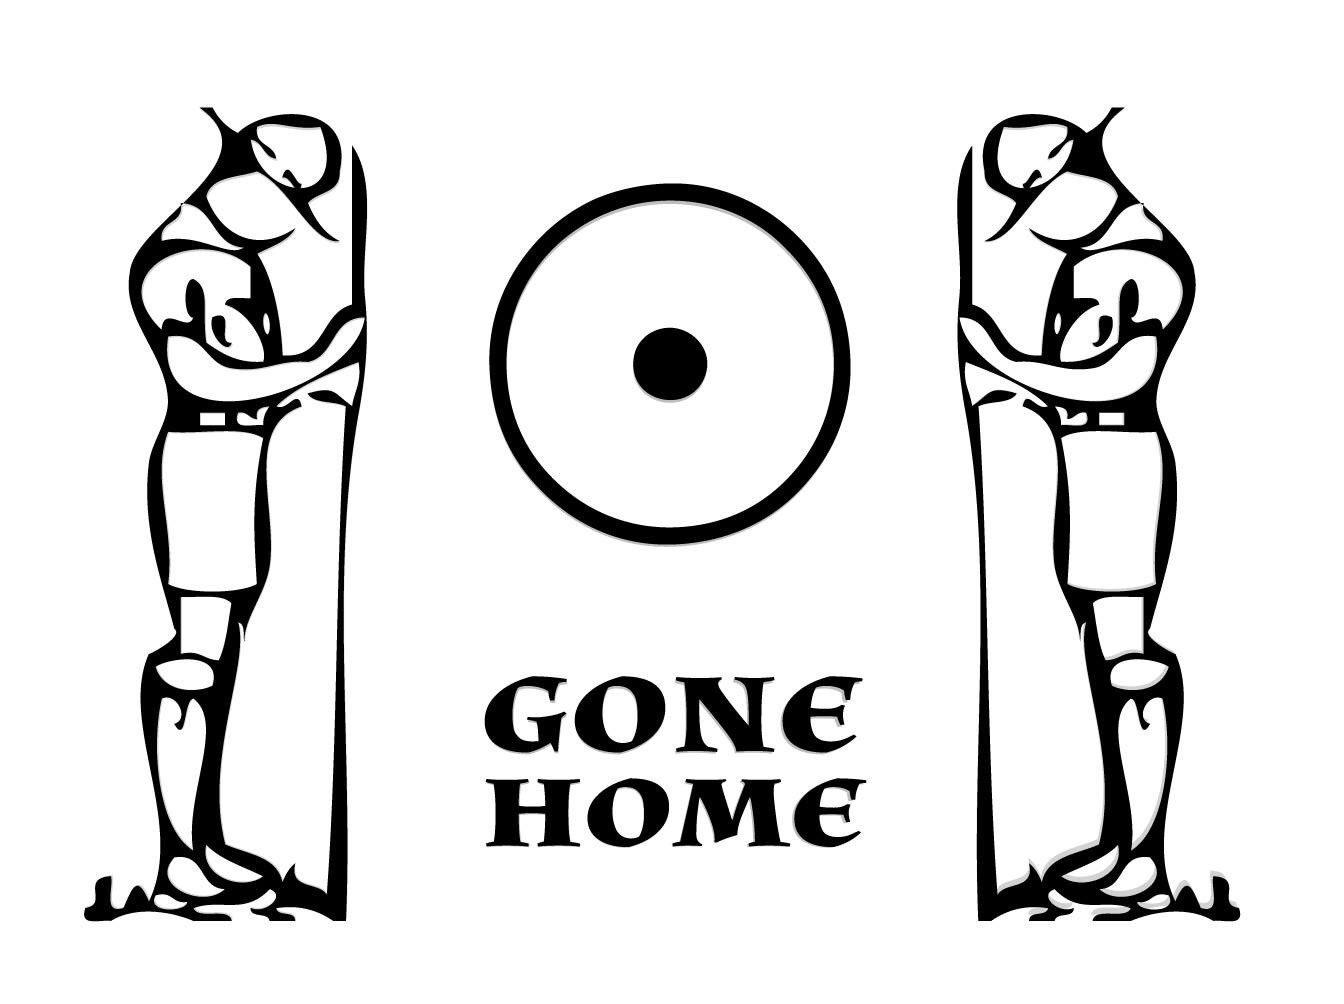 Gone Home: June Eilledge